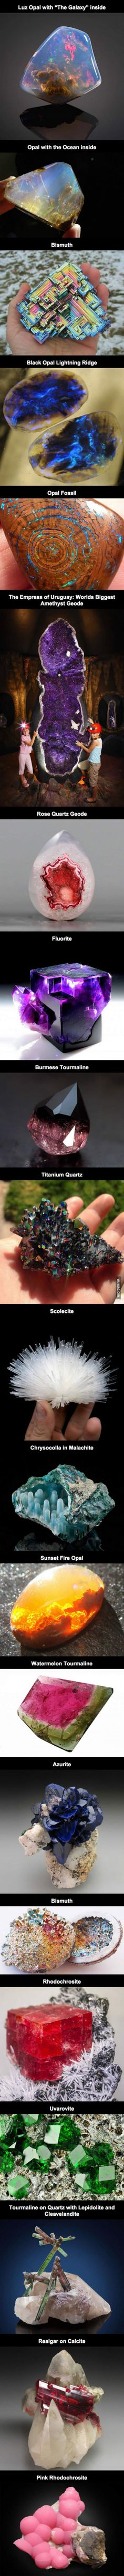 Some of the most beautiful minerals and stones